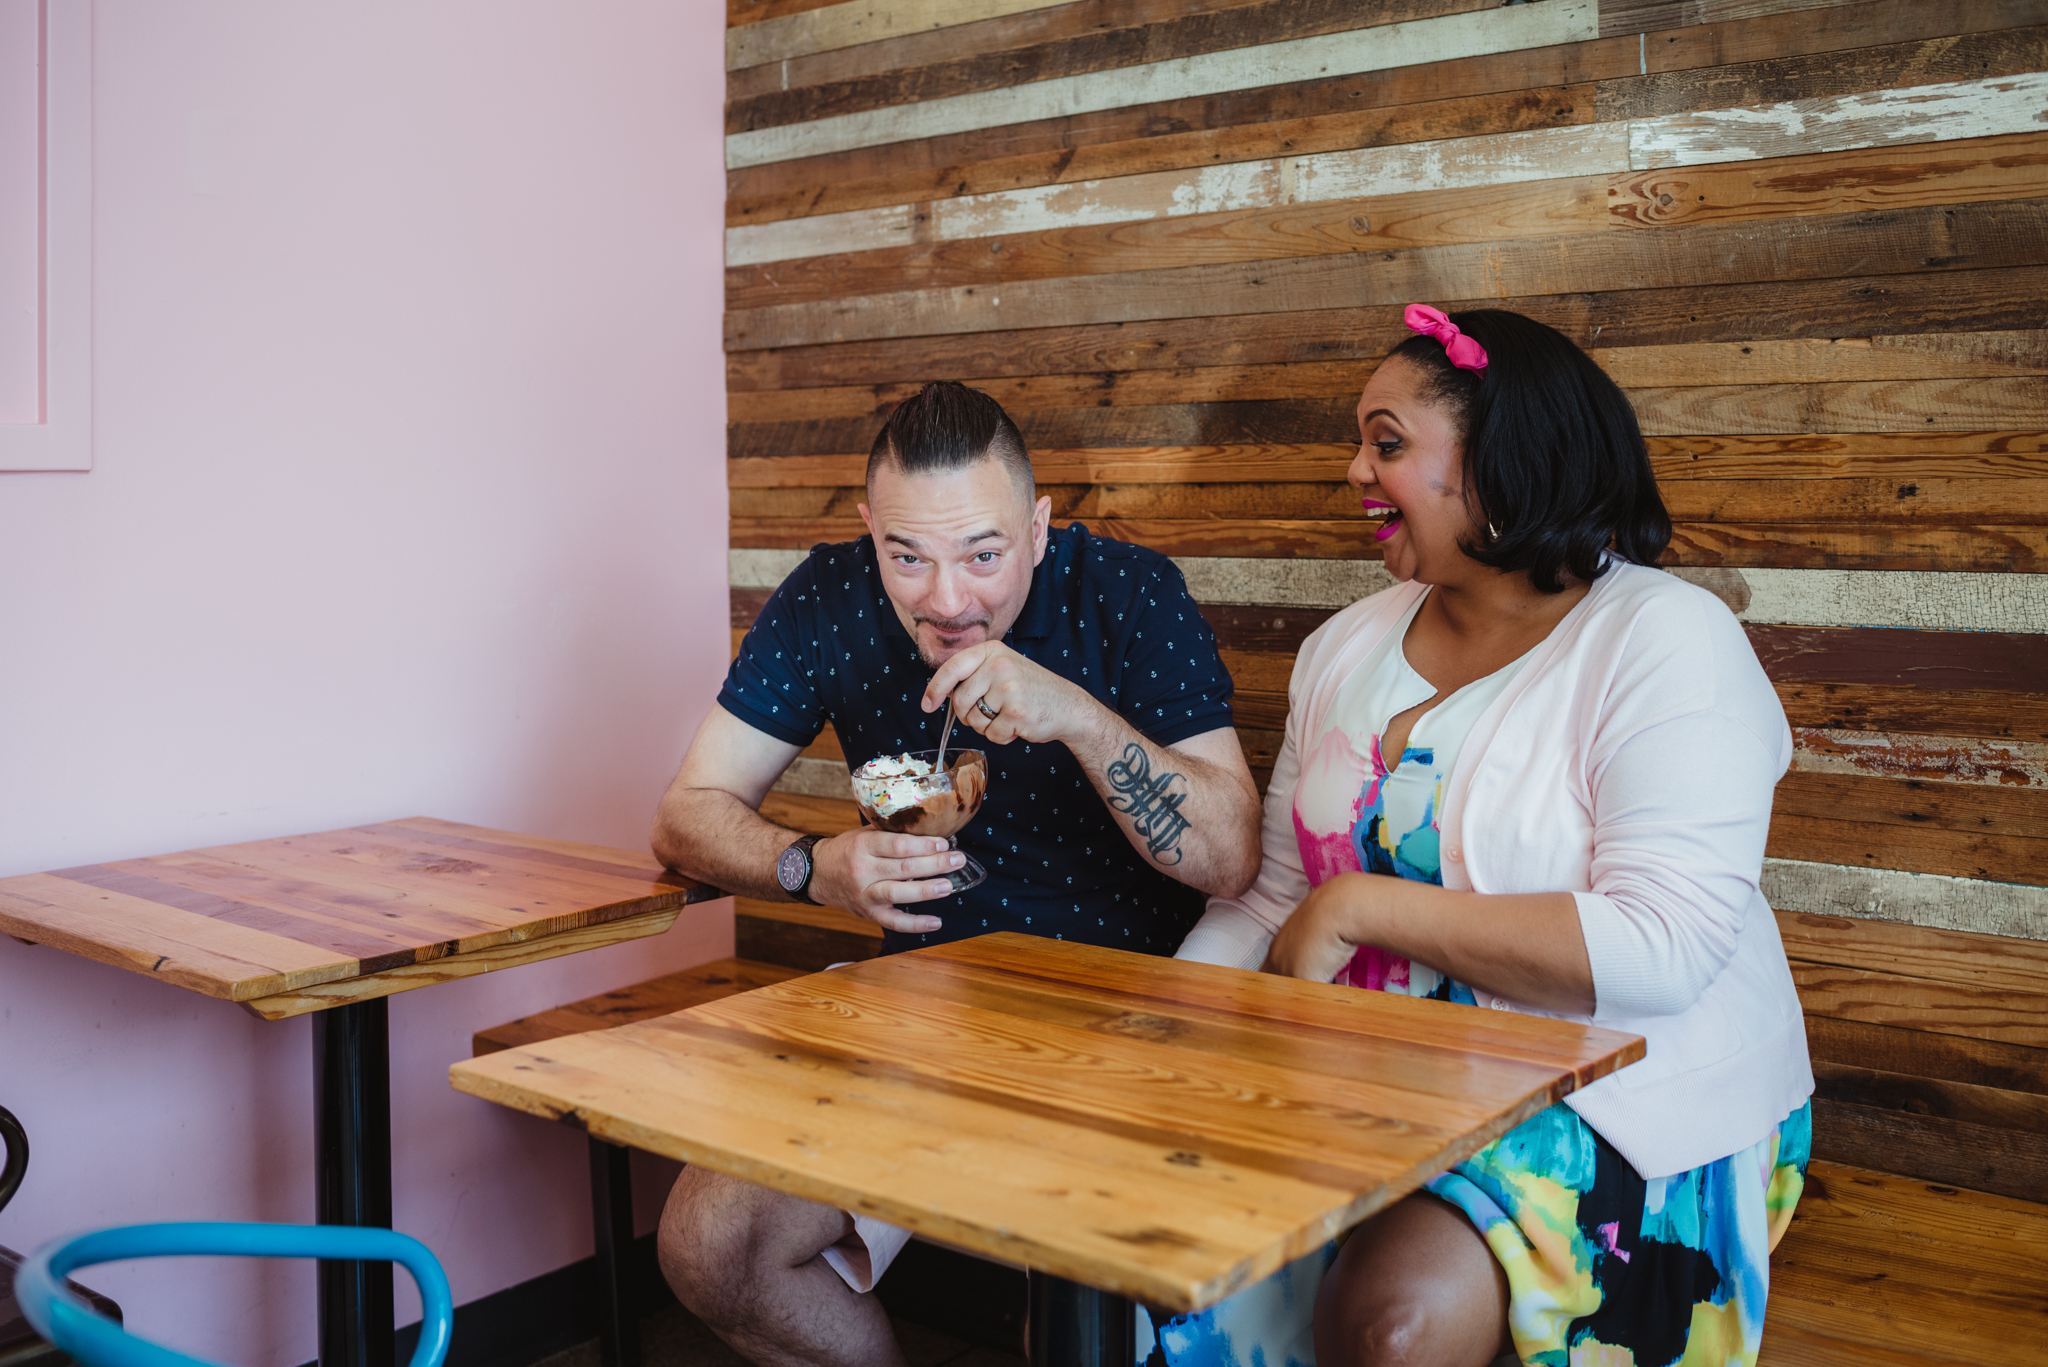 The dad to be steals the ice cream from the mom at The Parlour in Durham during their baby announcement photo session with Rose Trail Images.